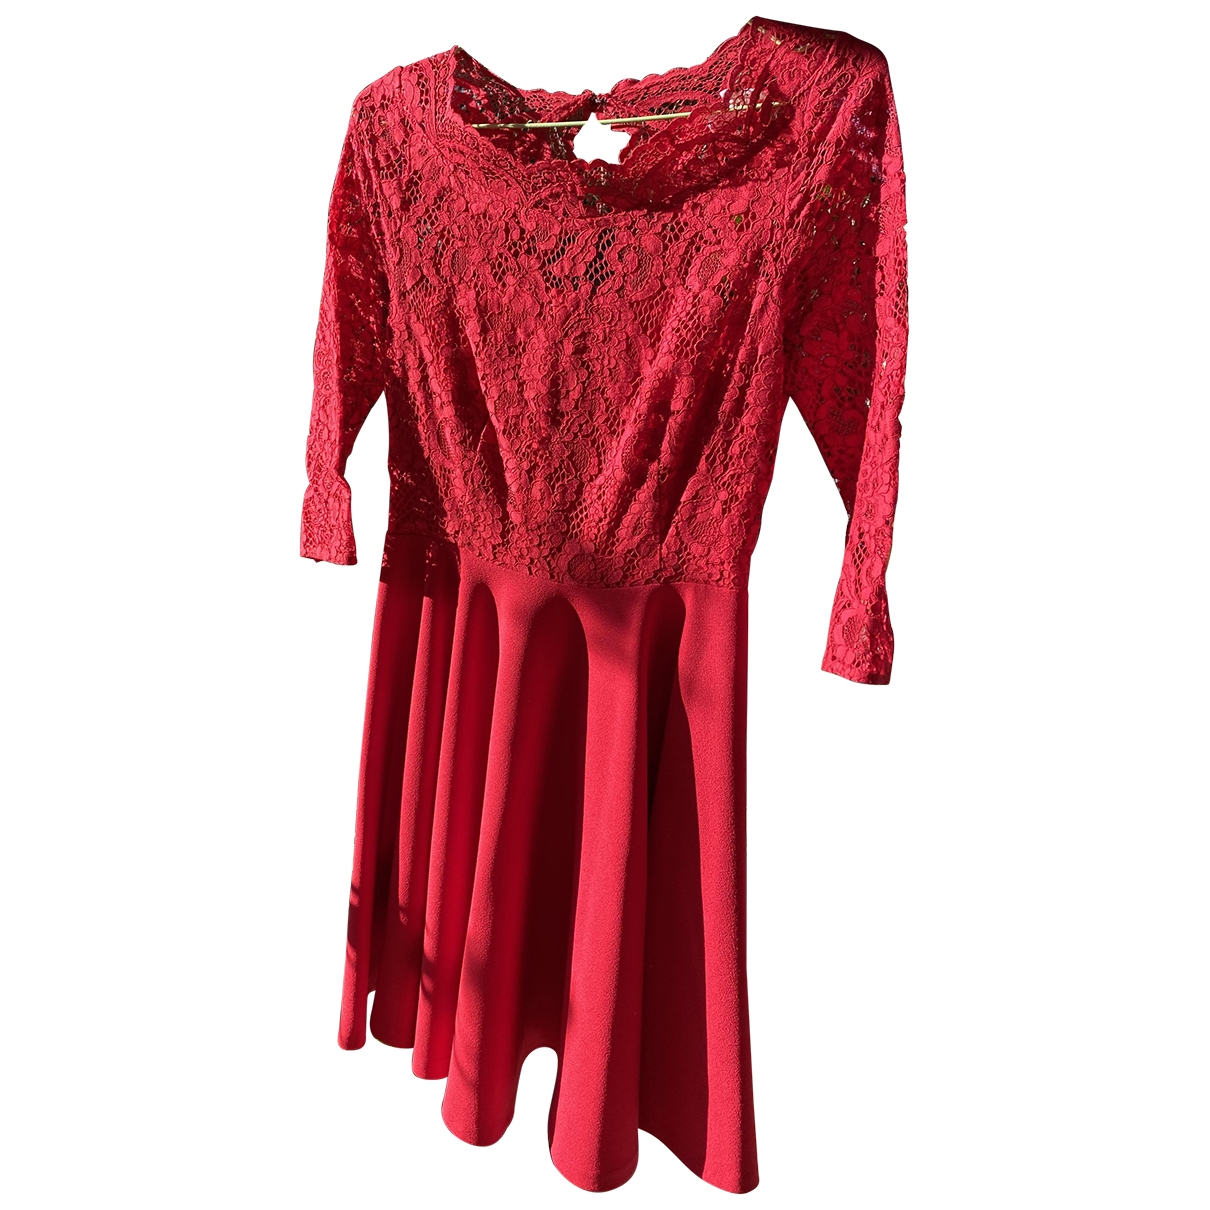 Claudie Pierlot \N Kleid in  Rot Polyester